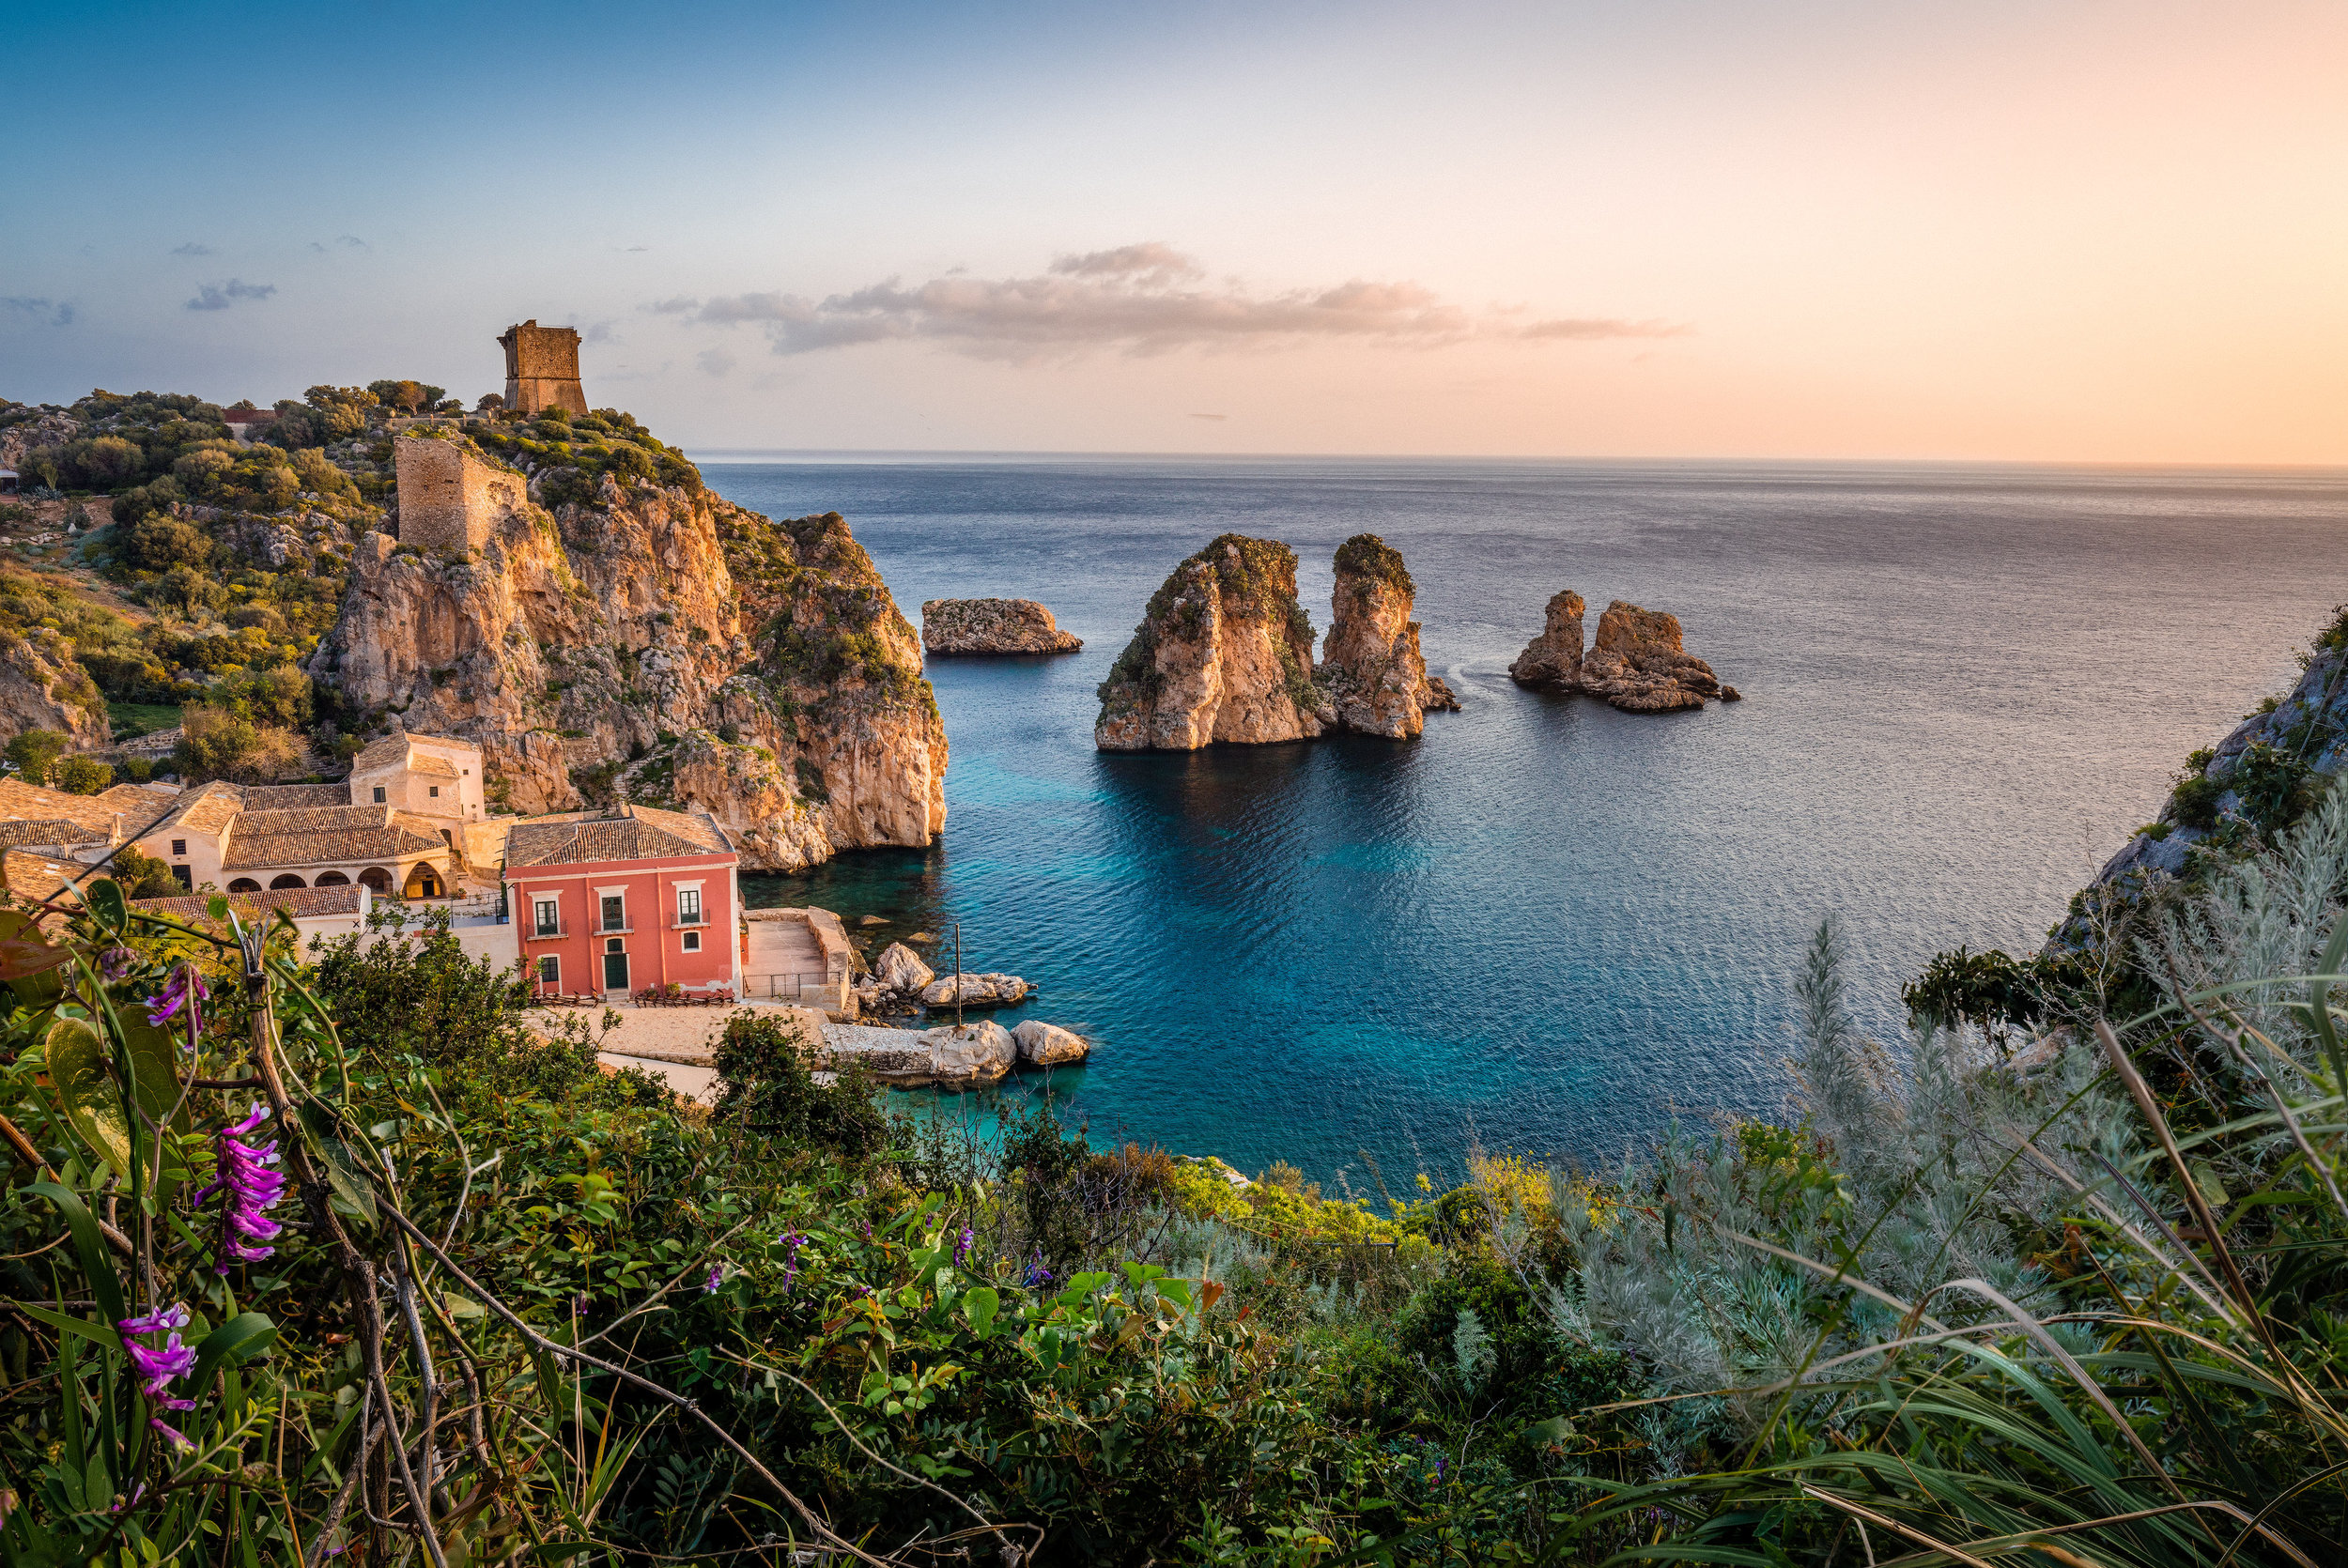 Taormina - Set high upon a hill overlooking the Ionian Sea, the ancient city of Taormina is a must visit. One can simply wander along charming cobblestone streets or enjoy an espresso and become whisked away to a romantic, dreamy Italian experience.